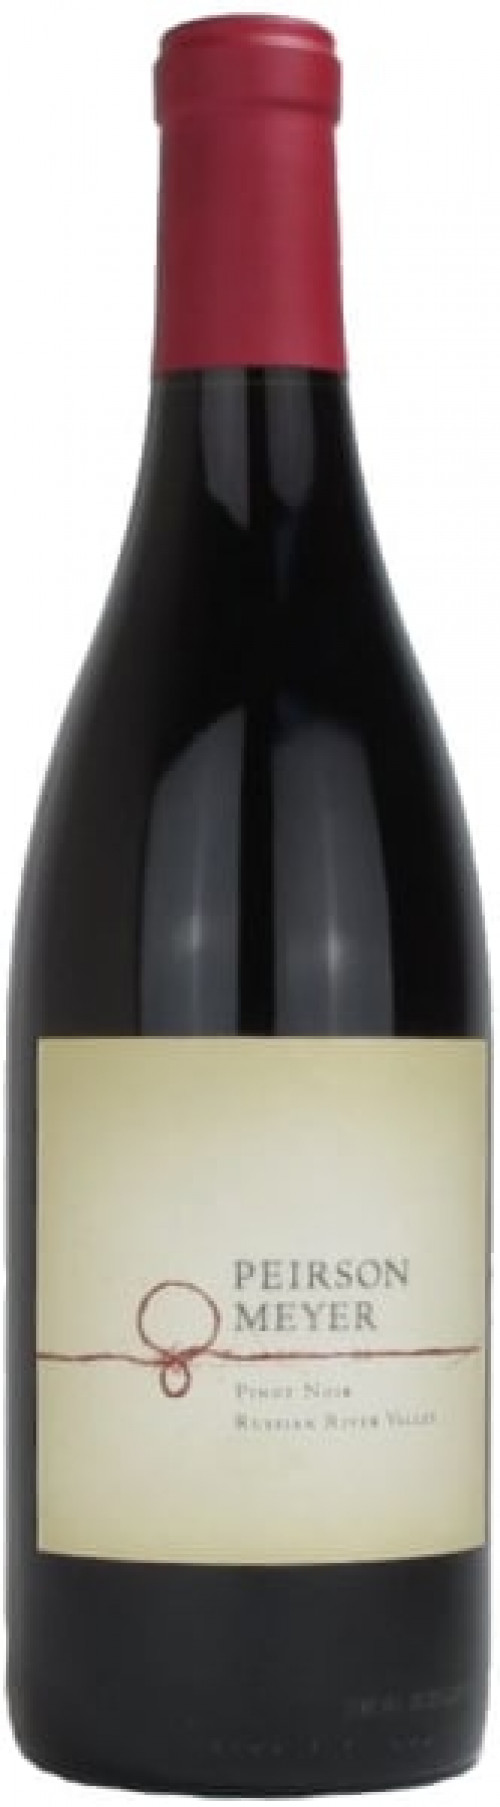 2015 Peirson Meyer Pinot Noir 750Ml